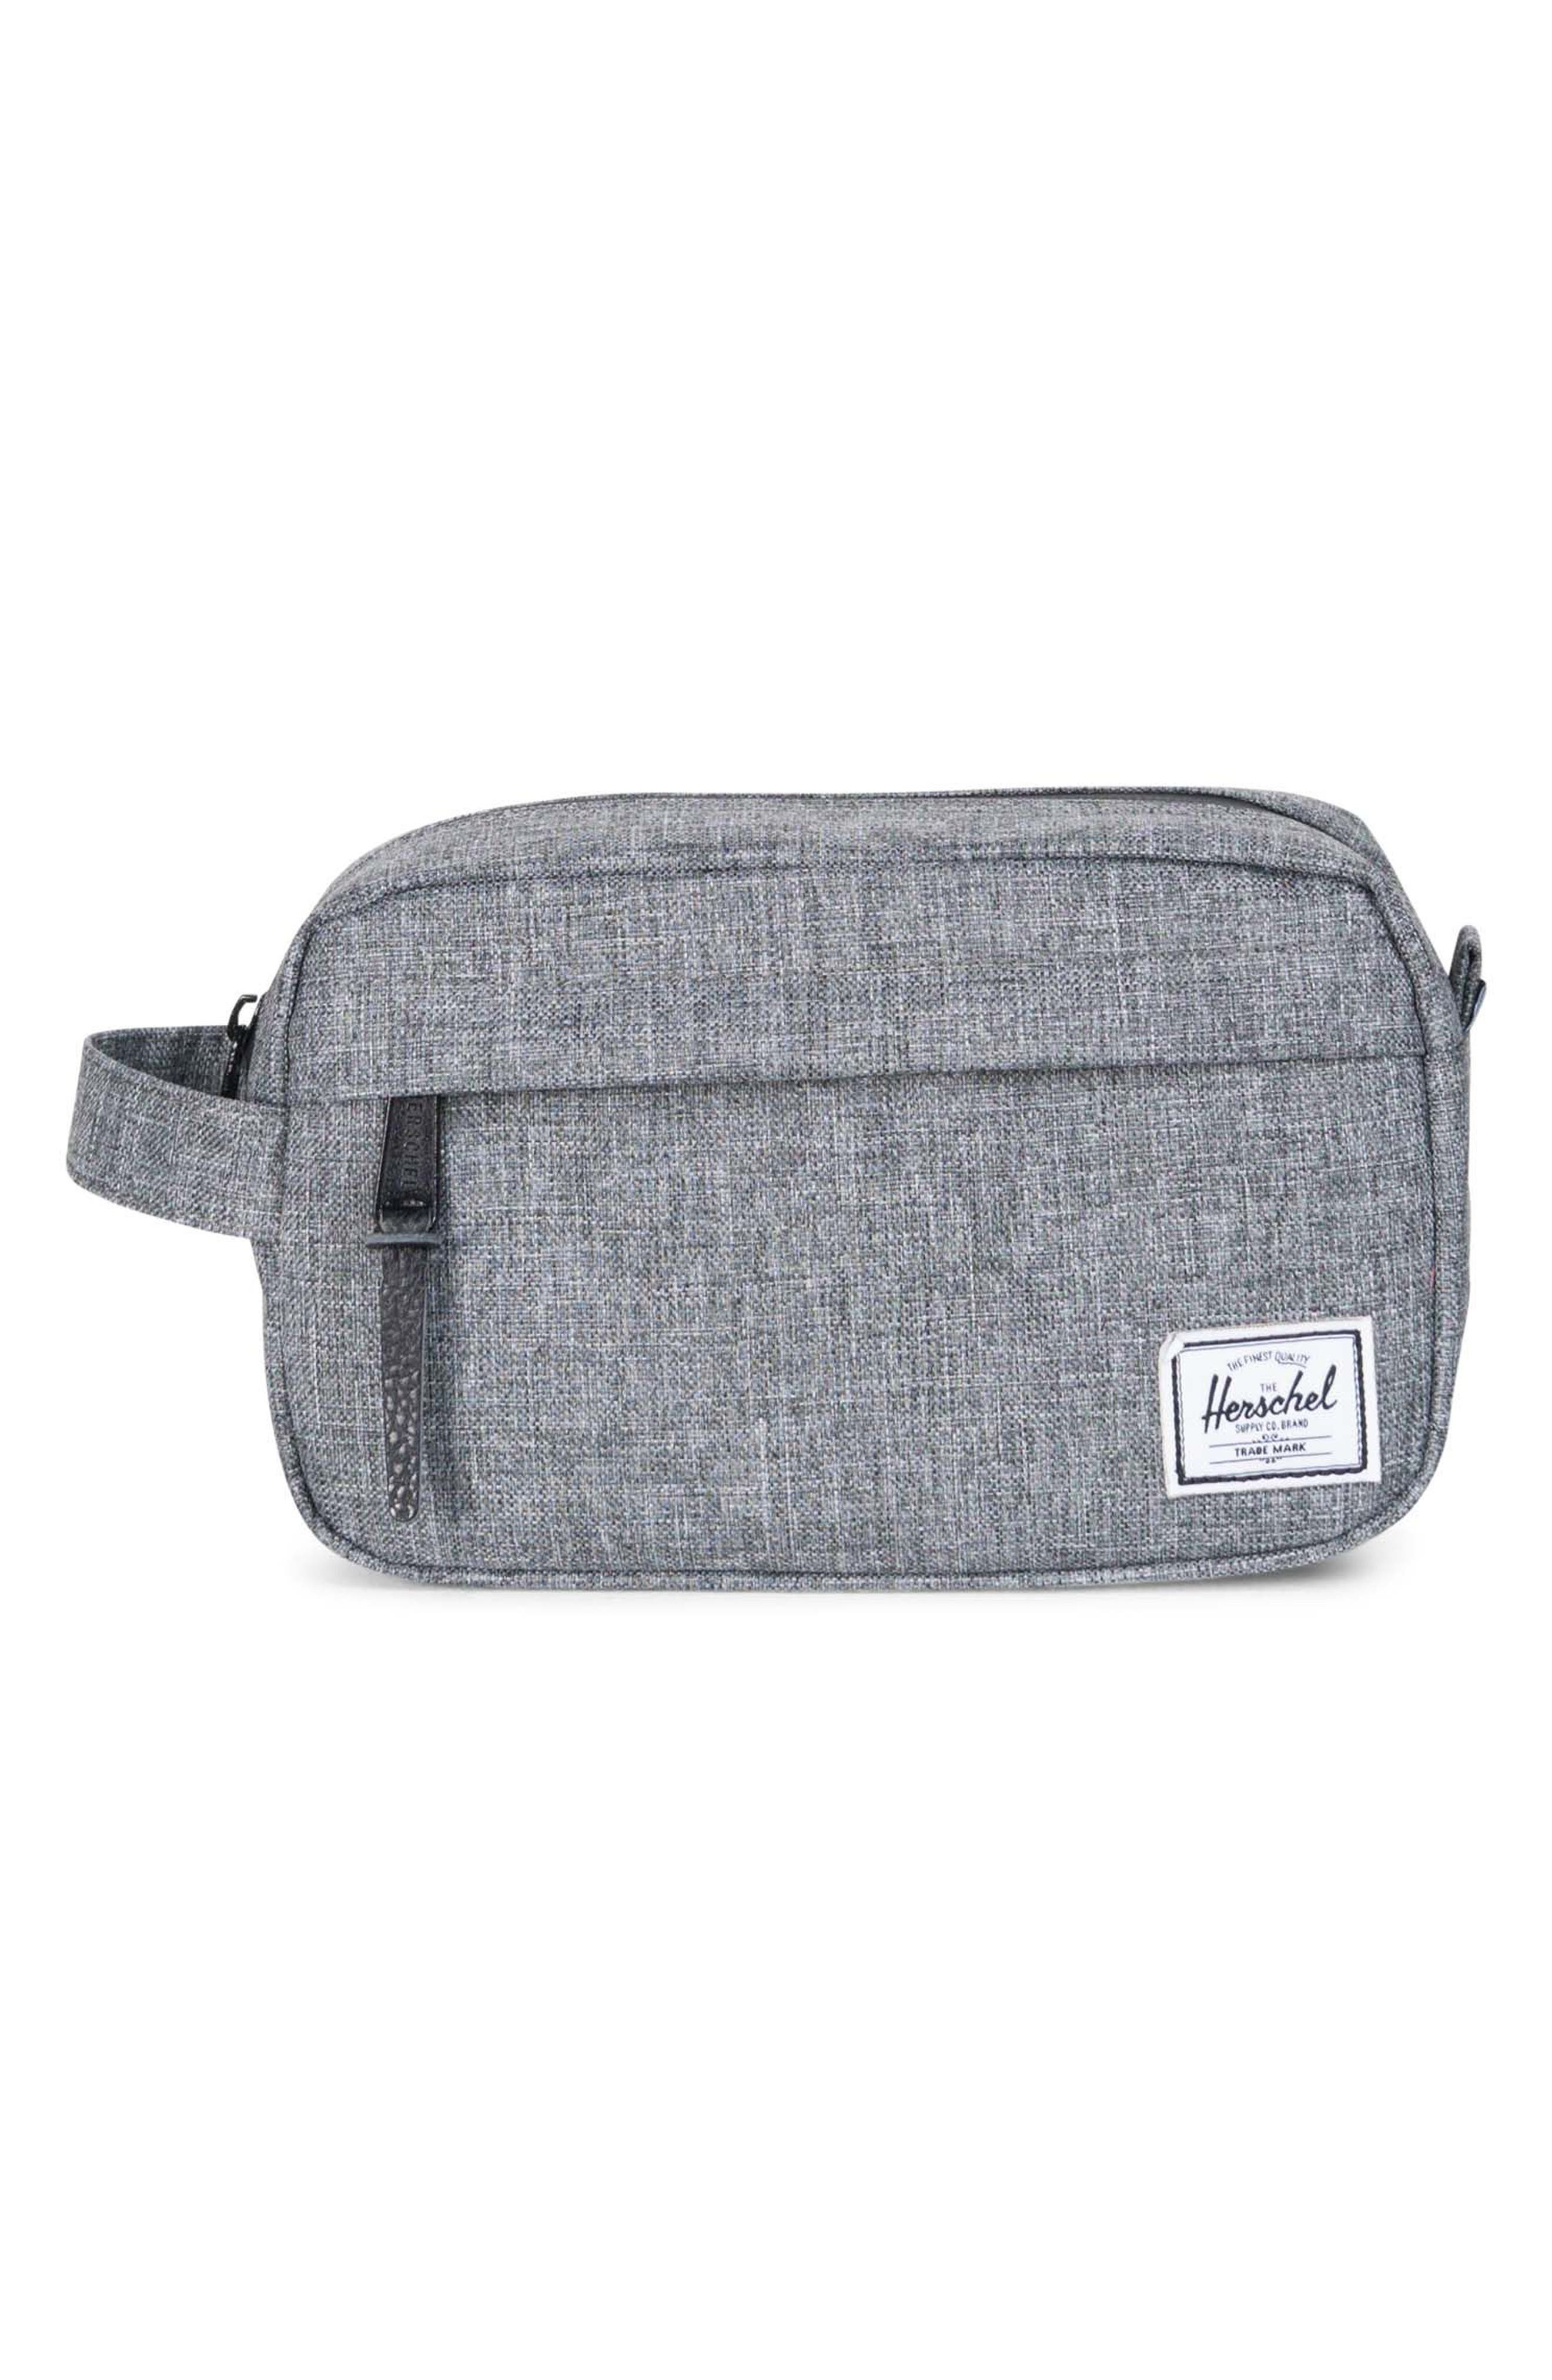 Chapter Carry-On Travel Kit,                             Main thumbnail 1, color,                             Raven Crosshatch